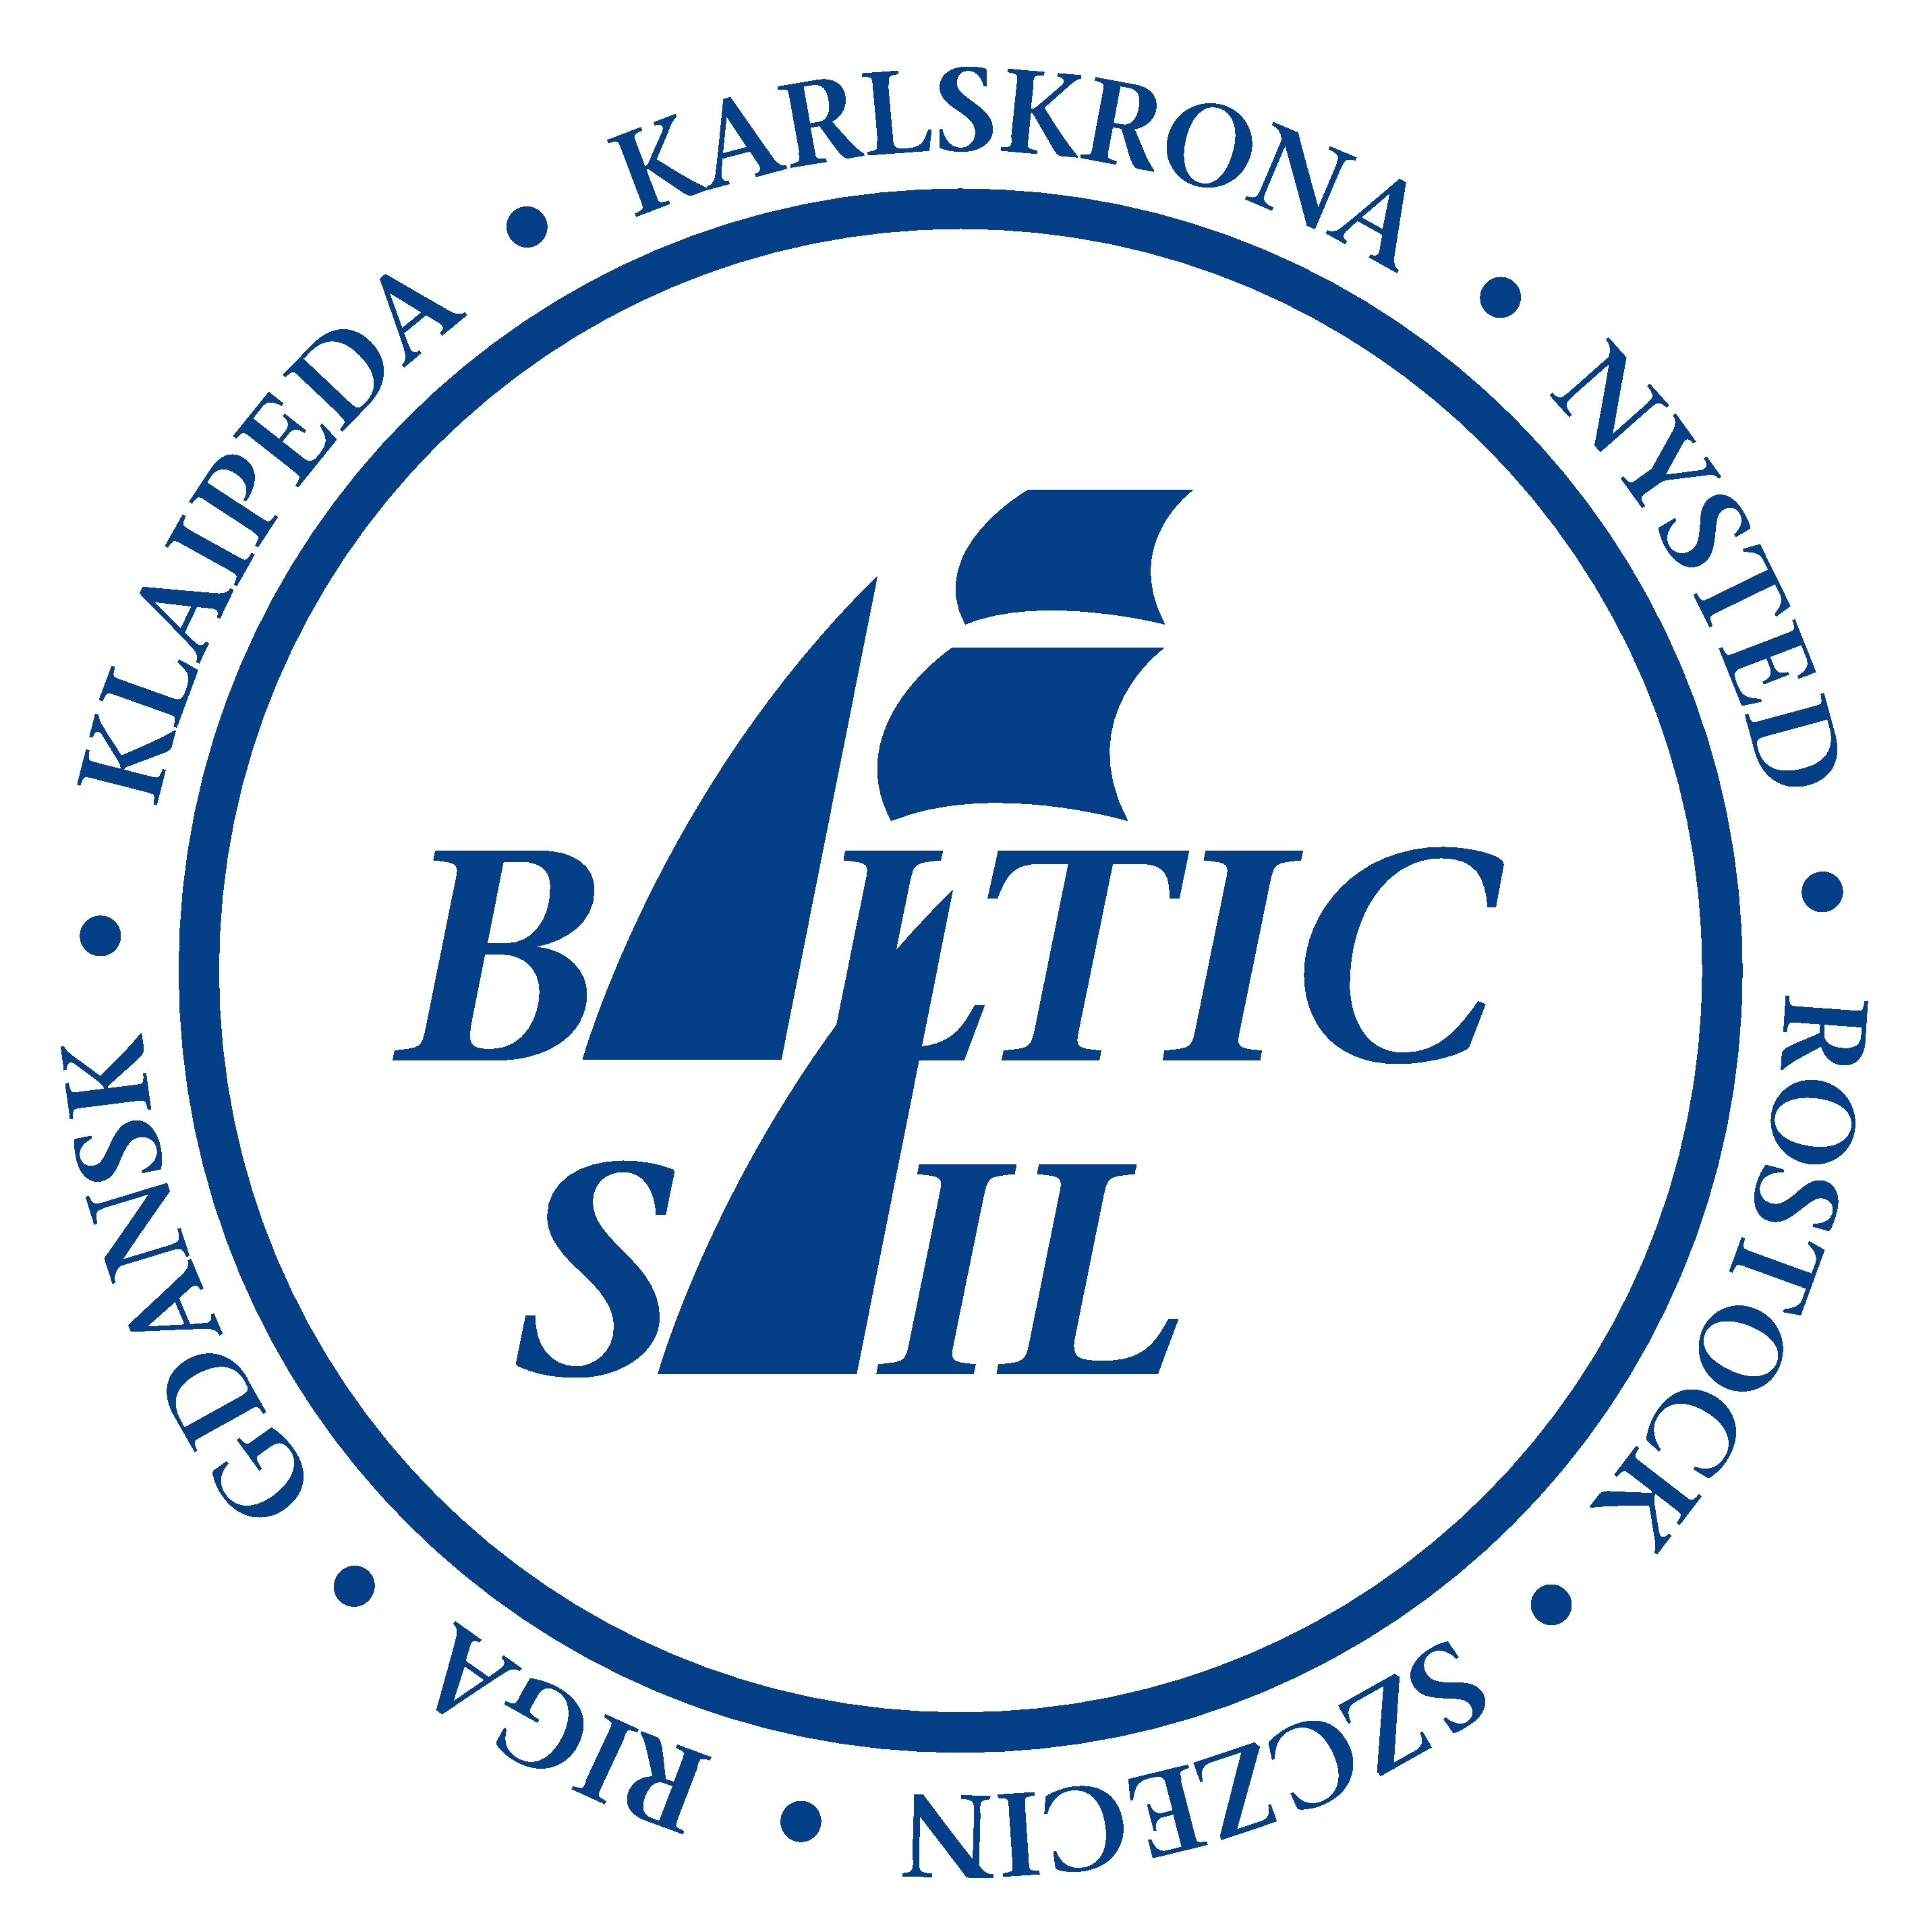 Baltic Sail Logo with all cities since 2017